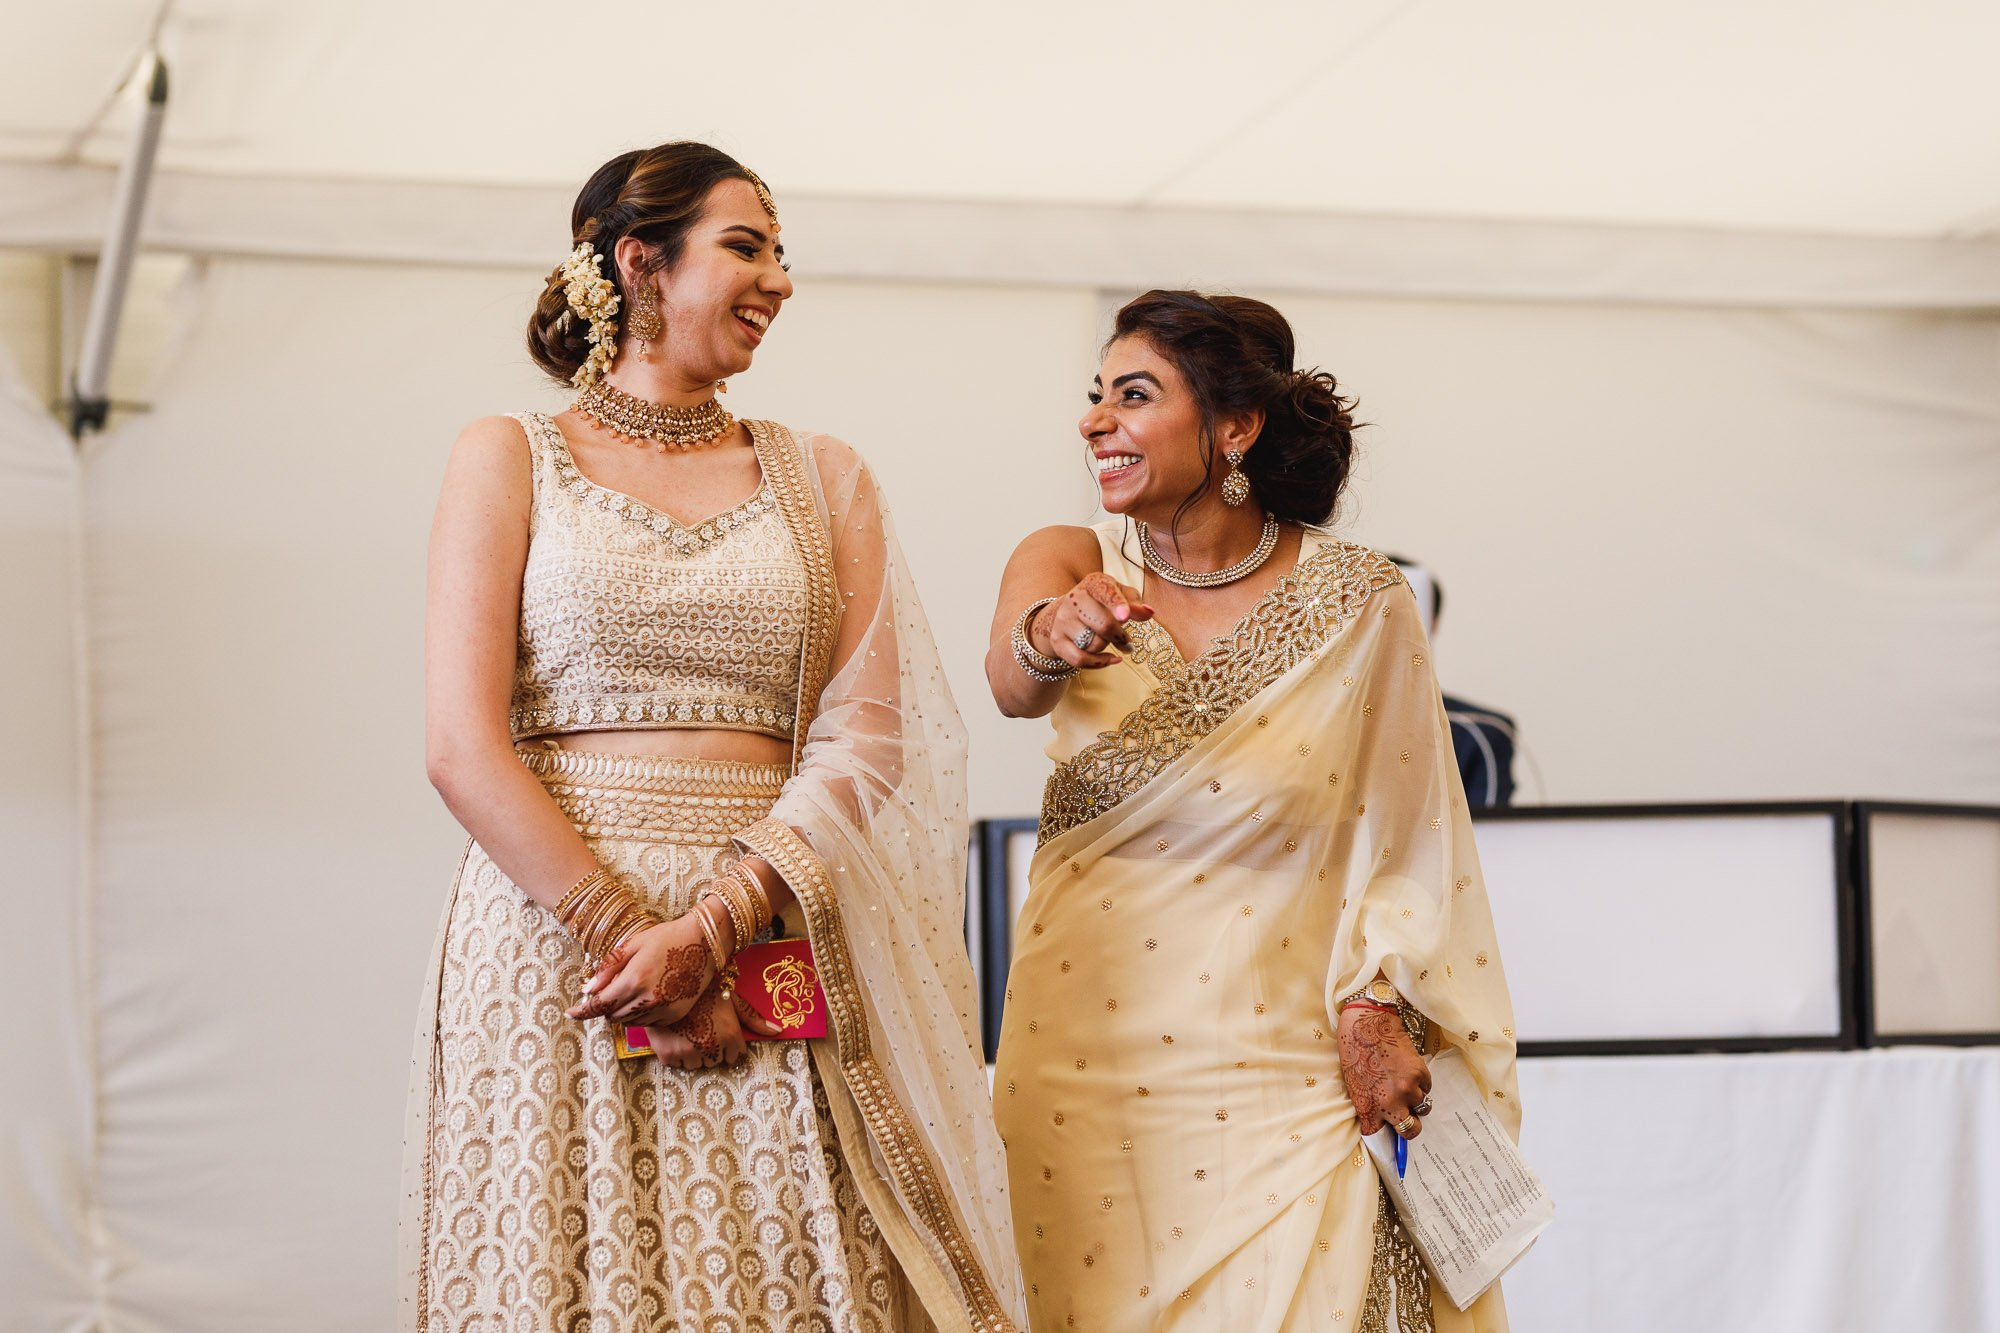 Heythrop Park Hotel, Oxfordshire, hindu wedding ceremony